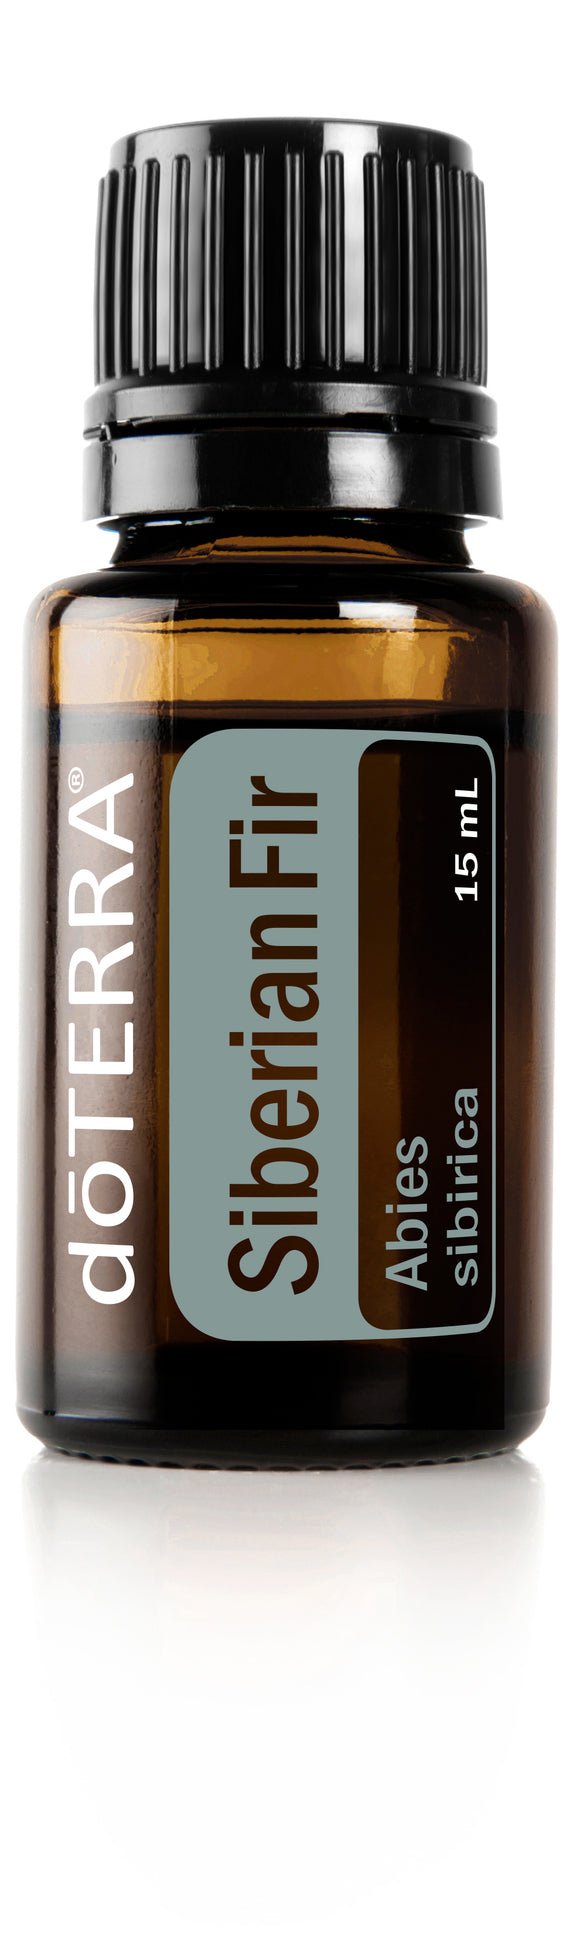 dōTERRA Siberian Fir Single Oil 15ml - CUSTOM AND ESSENTIALS